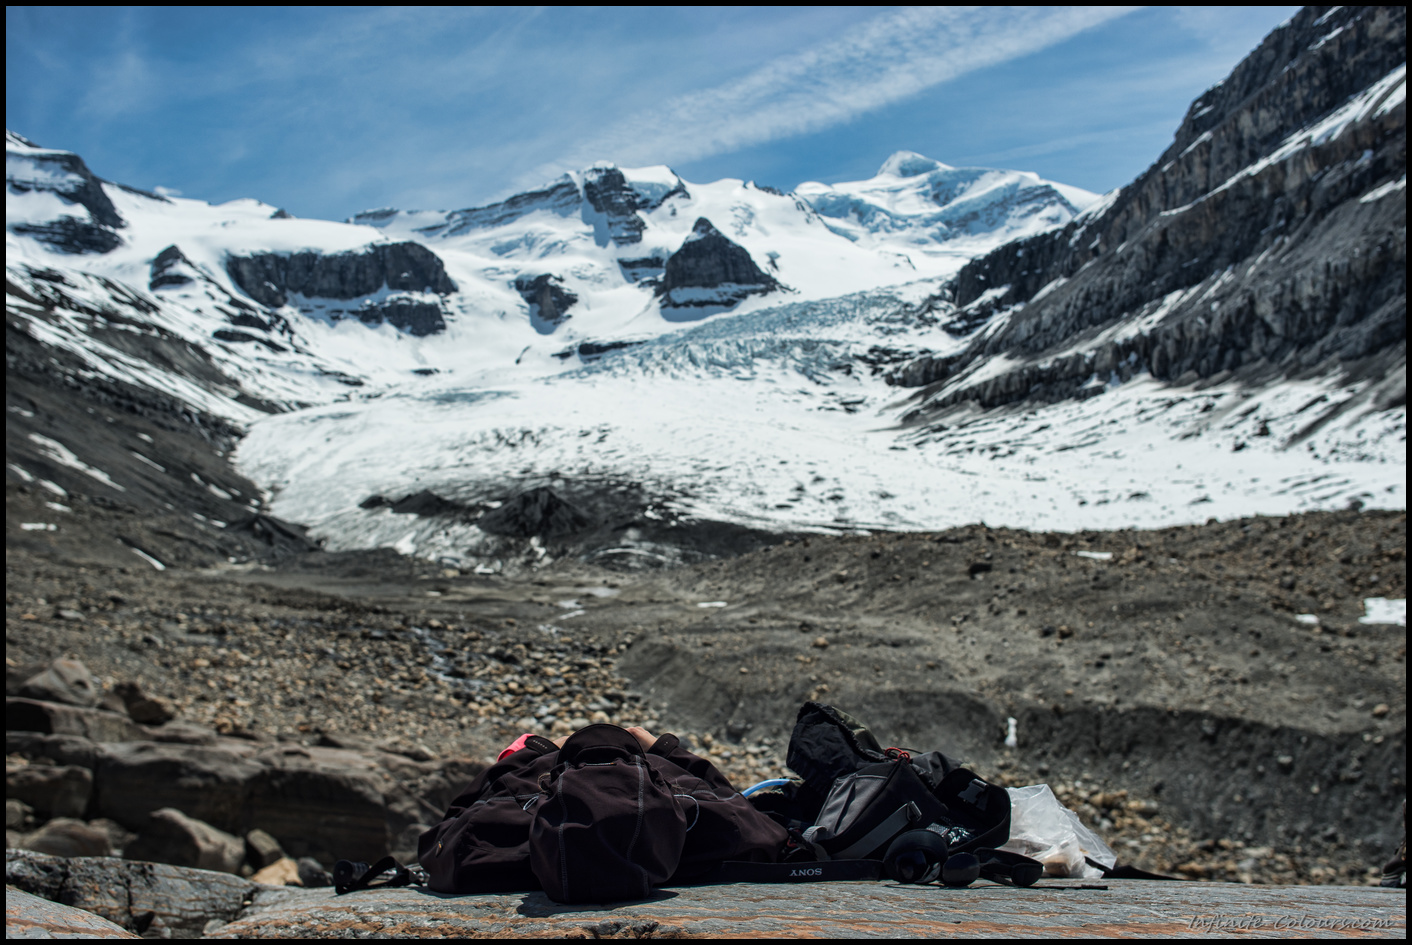 Taking a nap at the foot of Robson glacier, Berg Lake